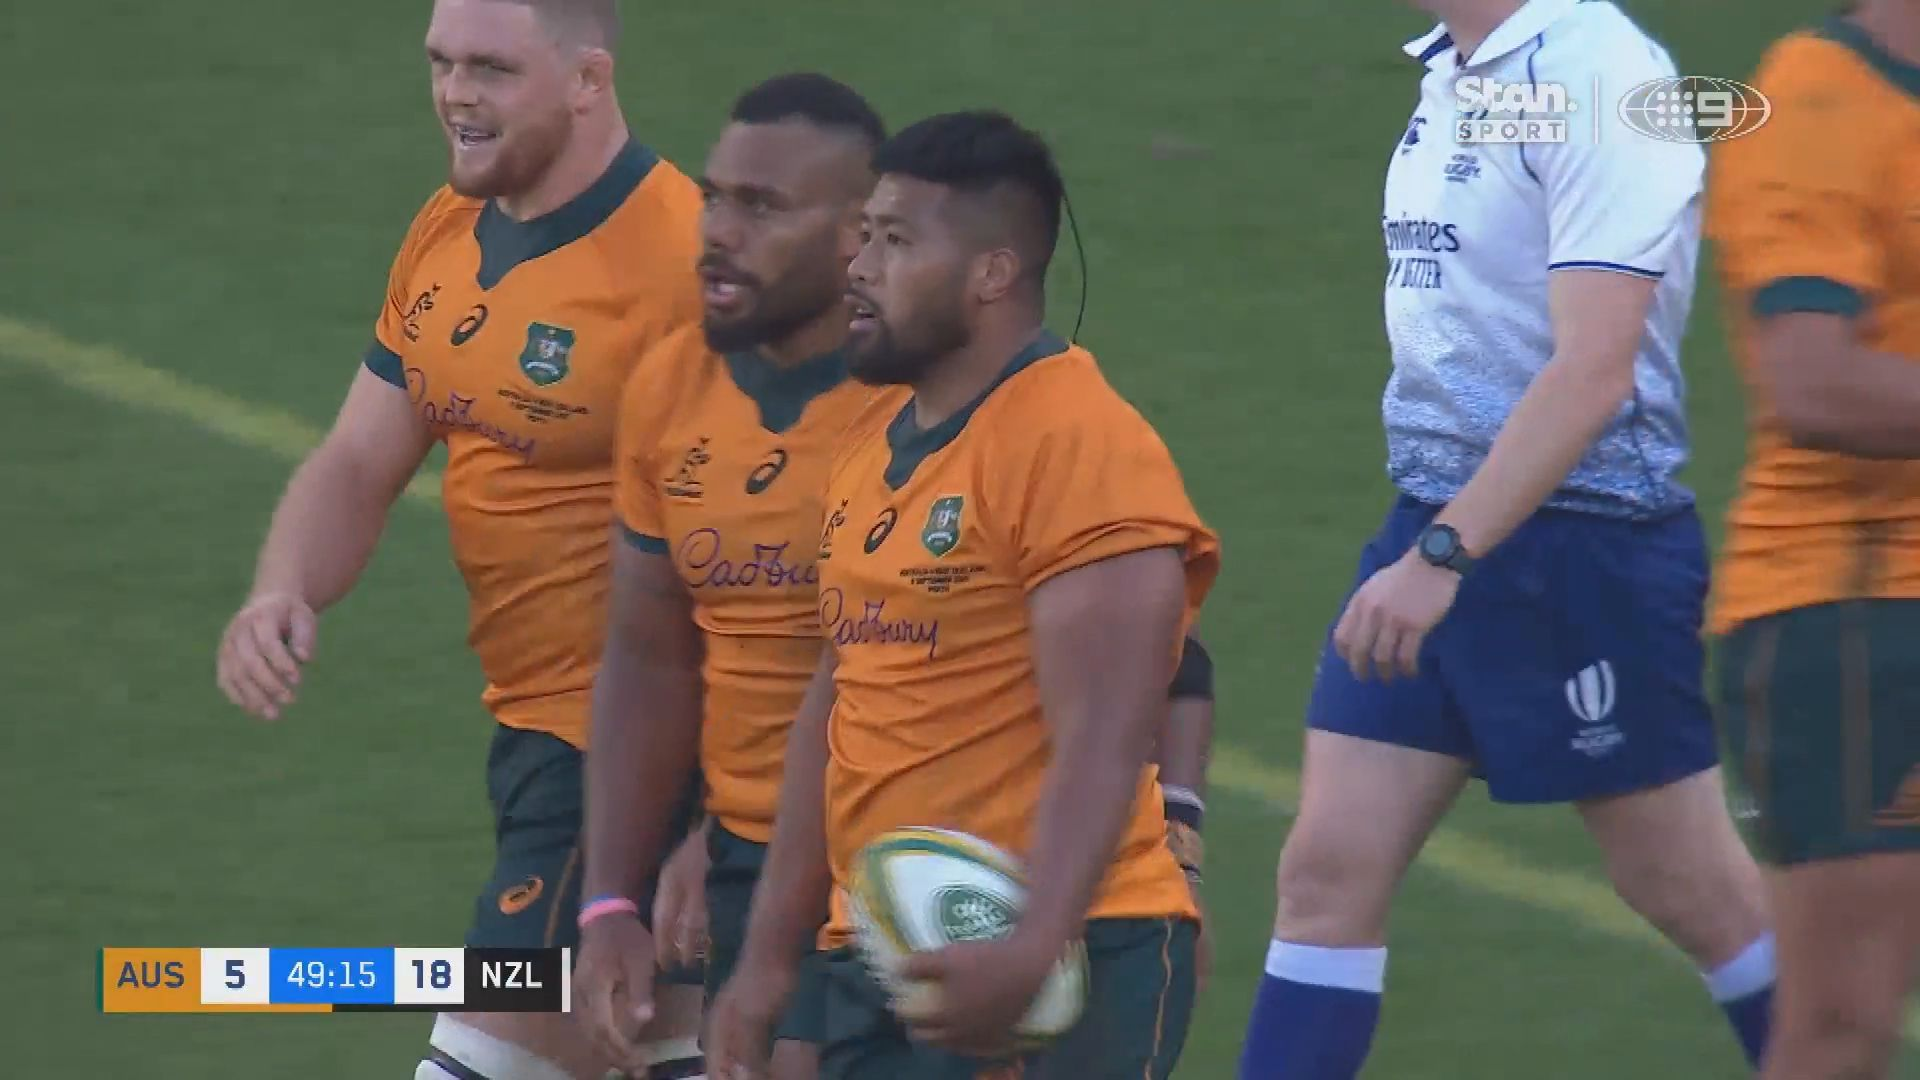 Wallabies unveil historic First Nations jersey ahead of Rugby Championship clash with South Africa